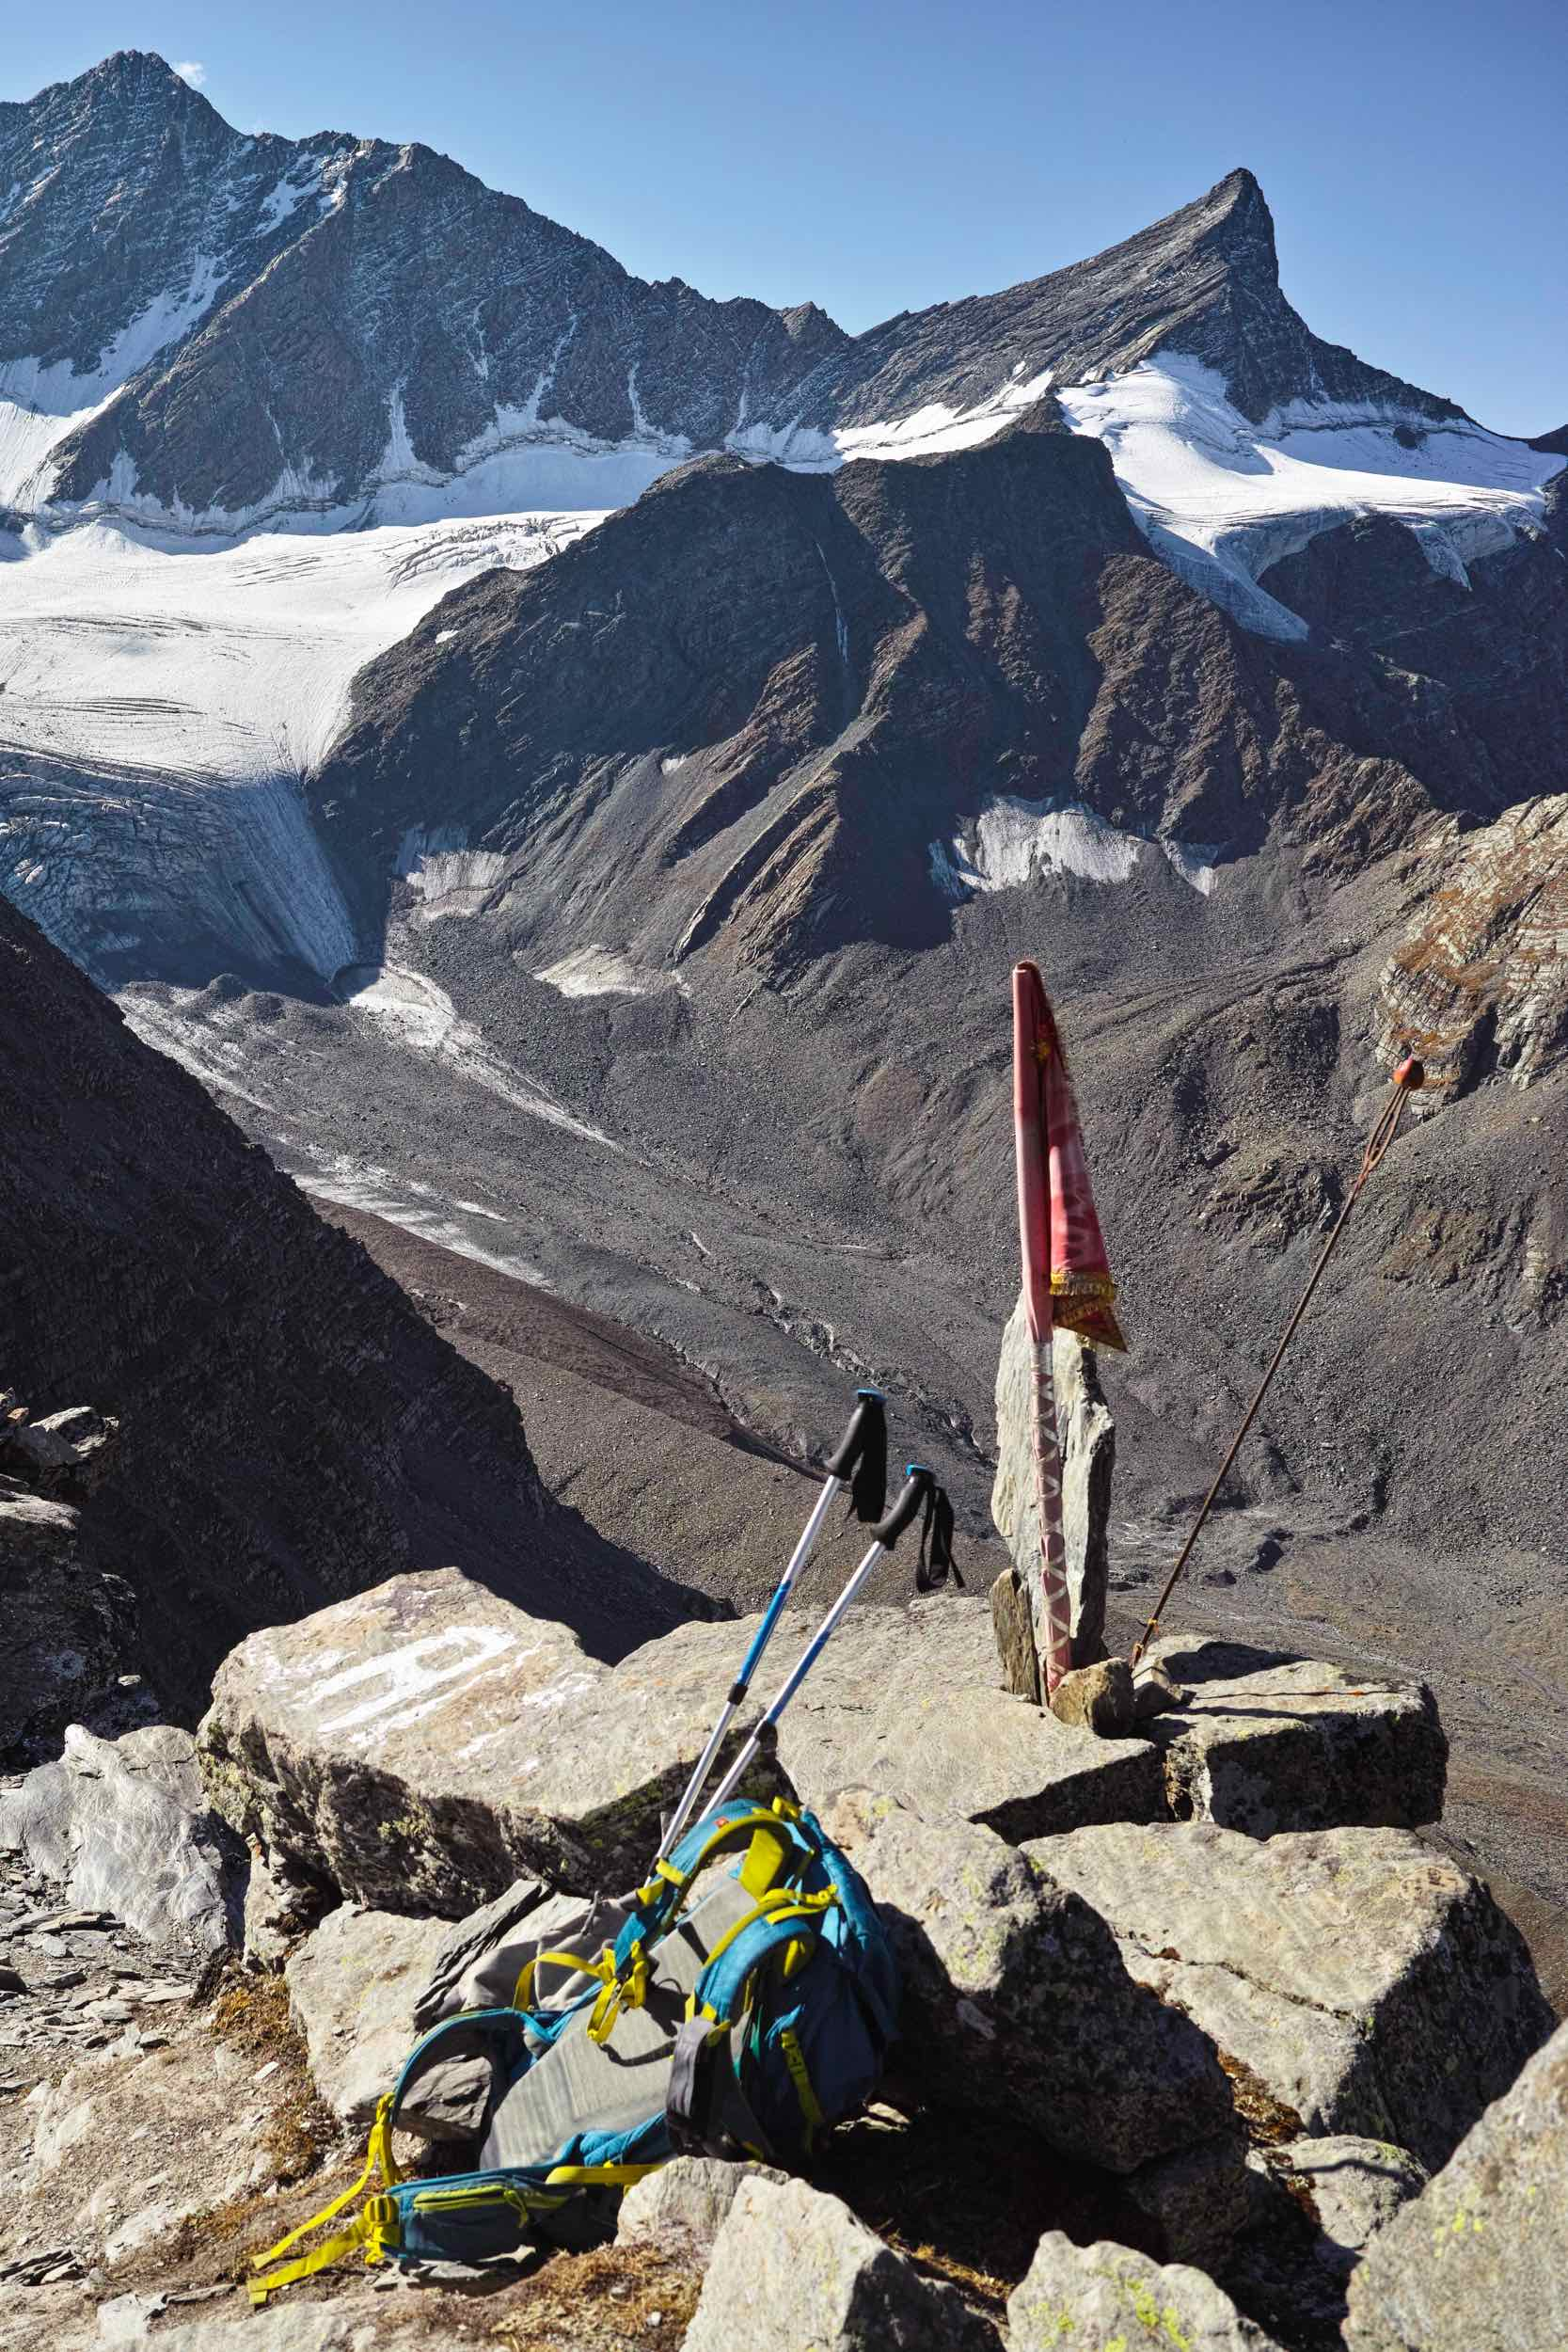 At Kalah pass with Decathlon's Speed 50 backpack and Forclaz 500 trekking poles